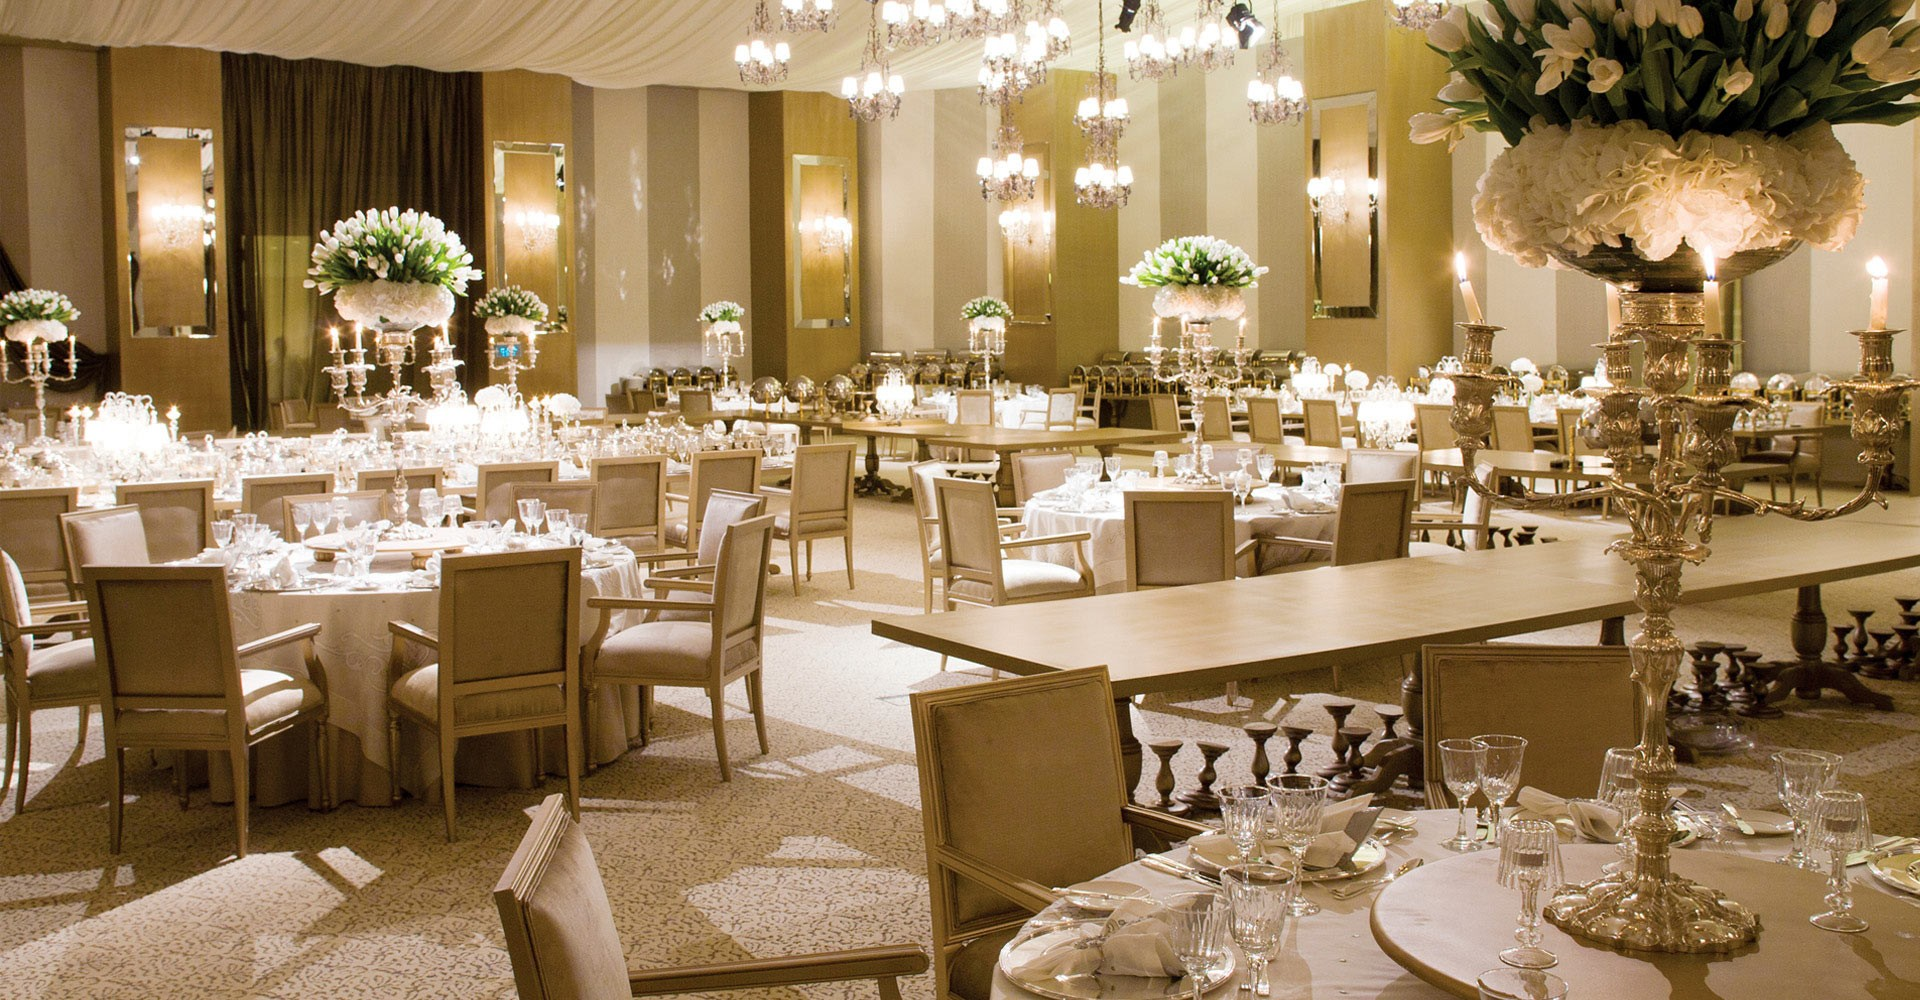 Banqueting and events